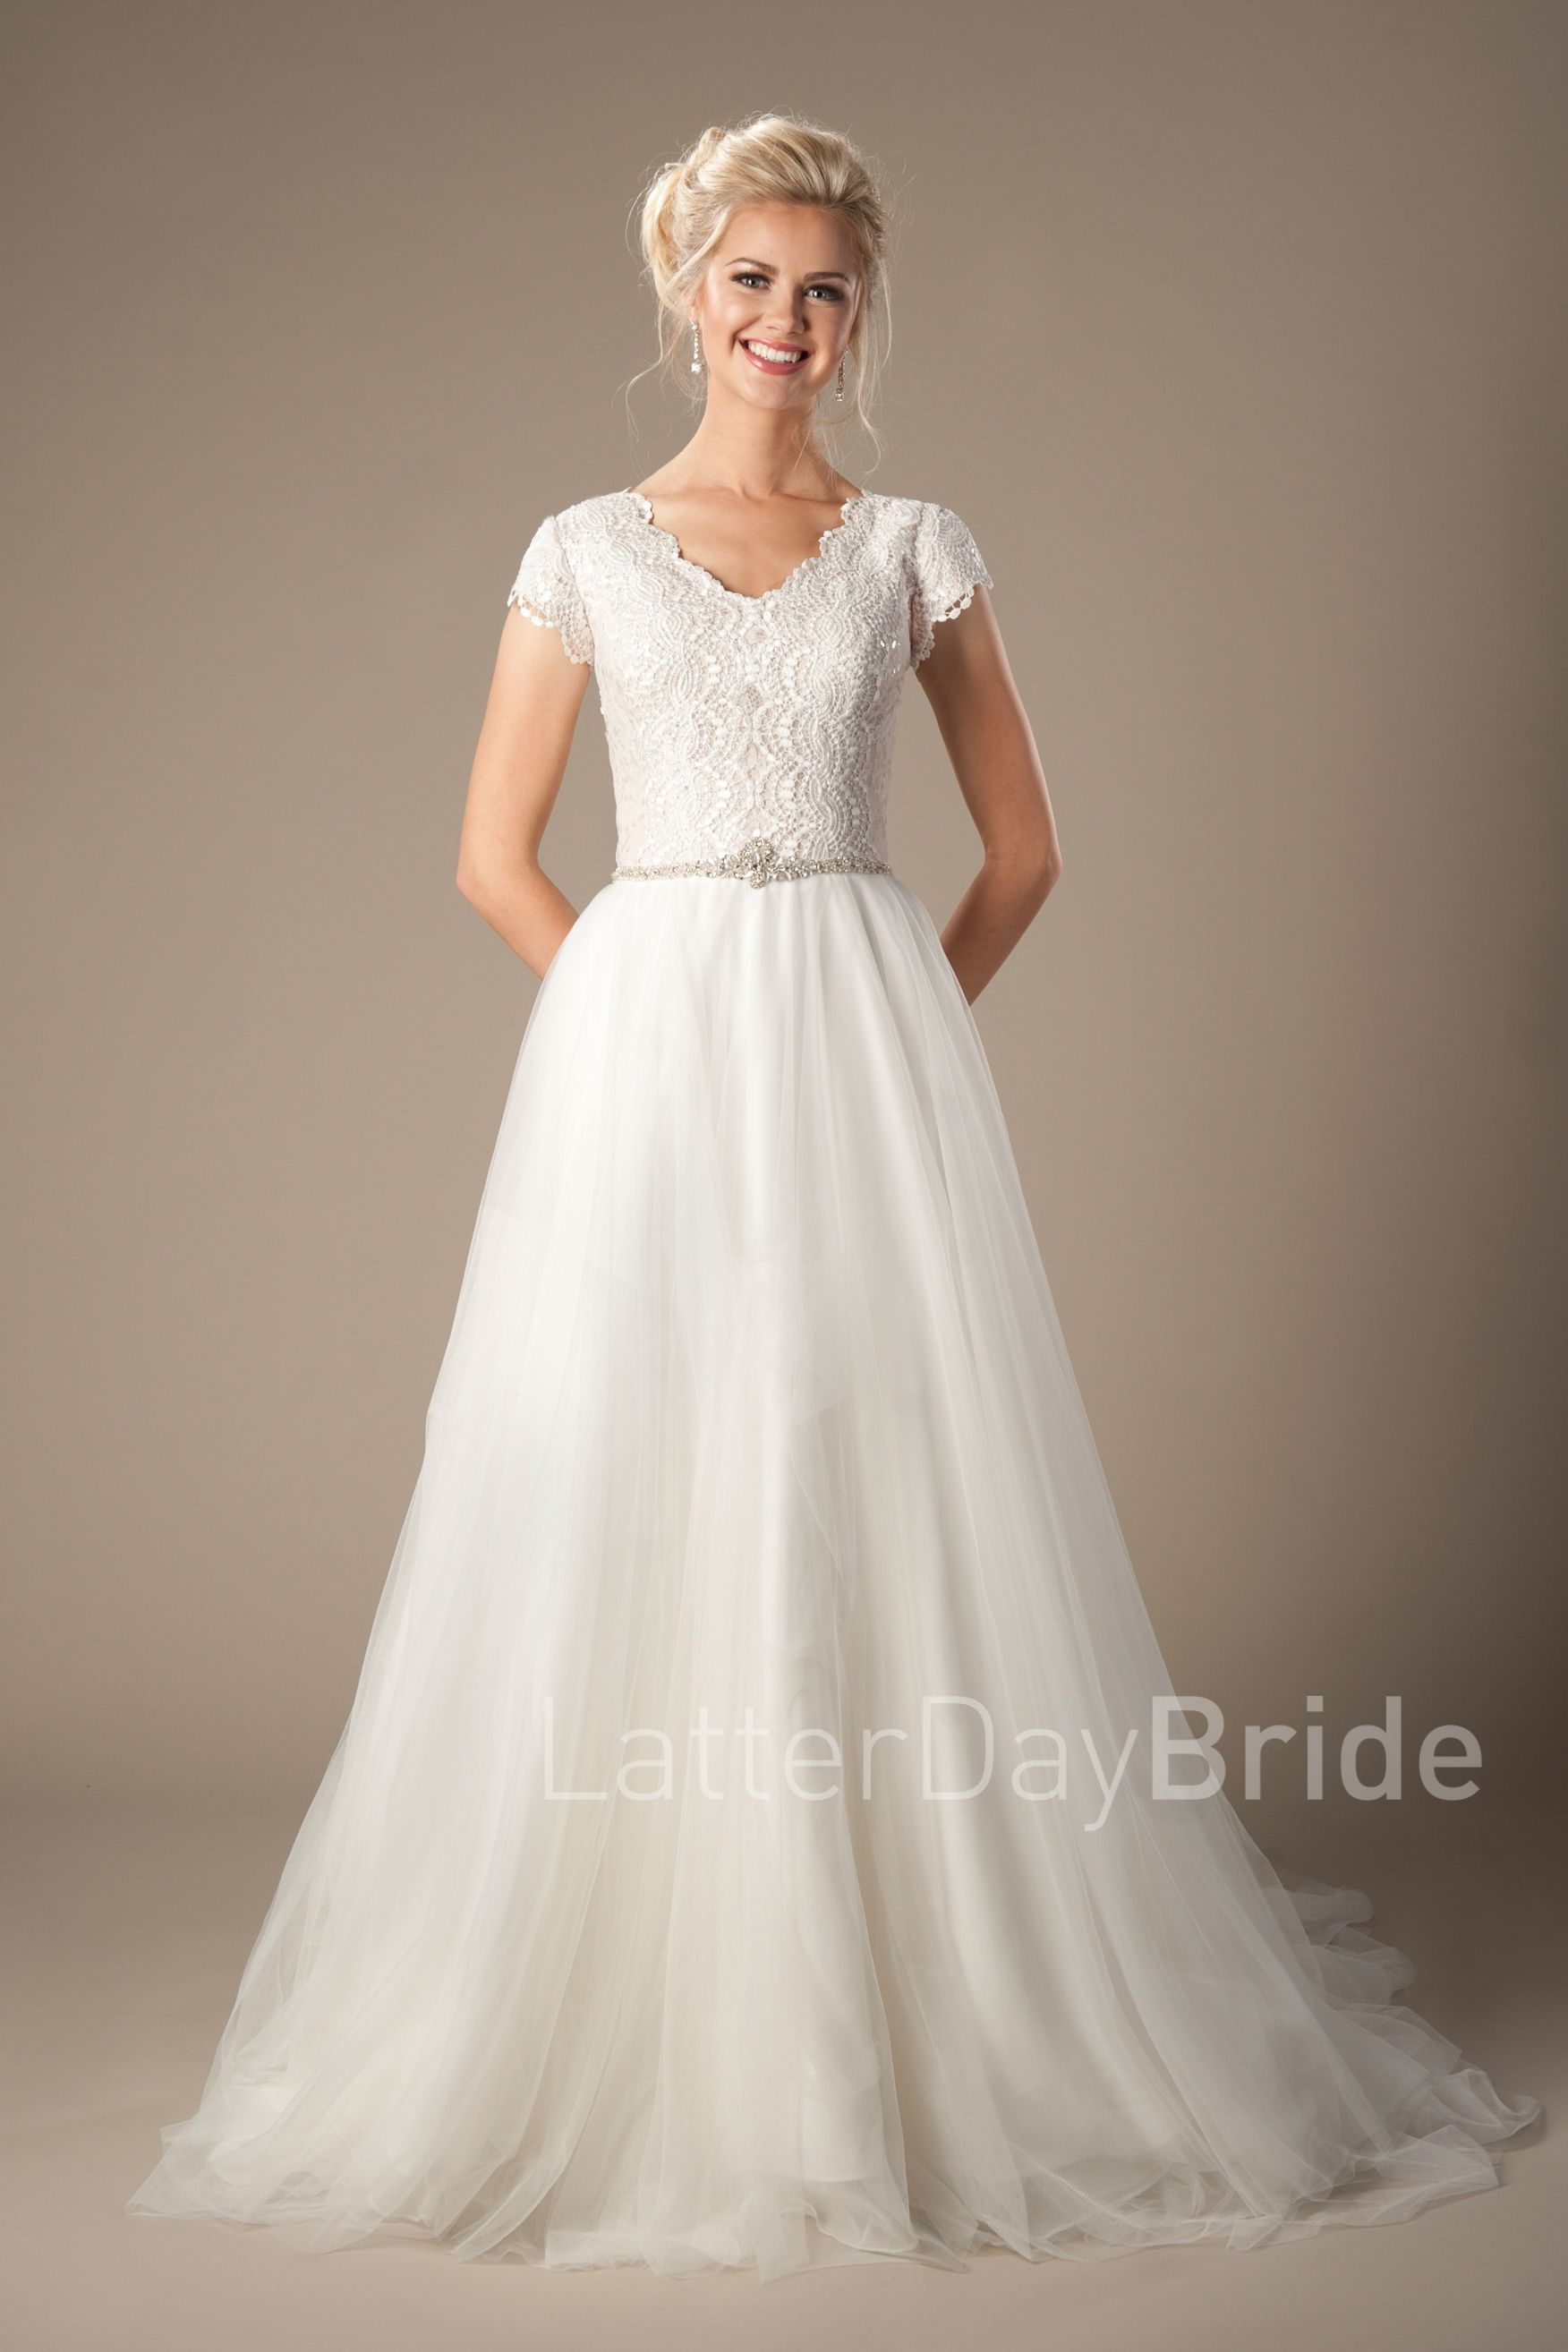 Modest Bridal Gowns : Markova | Here comes the bride | Pinterest ...